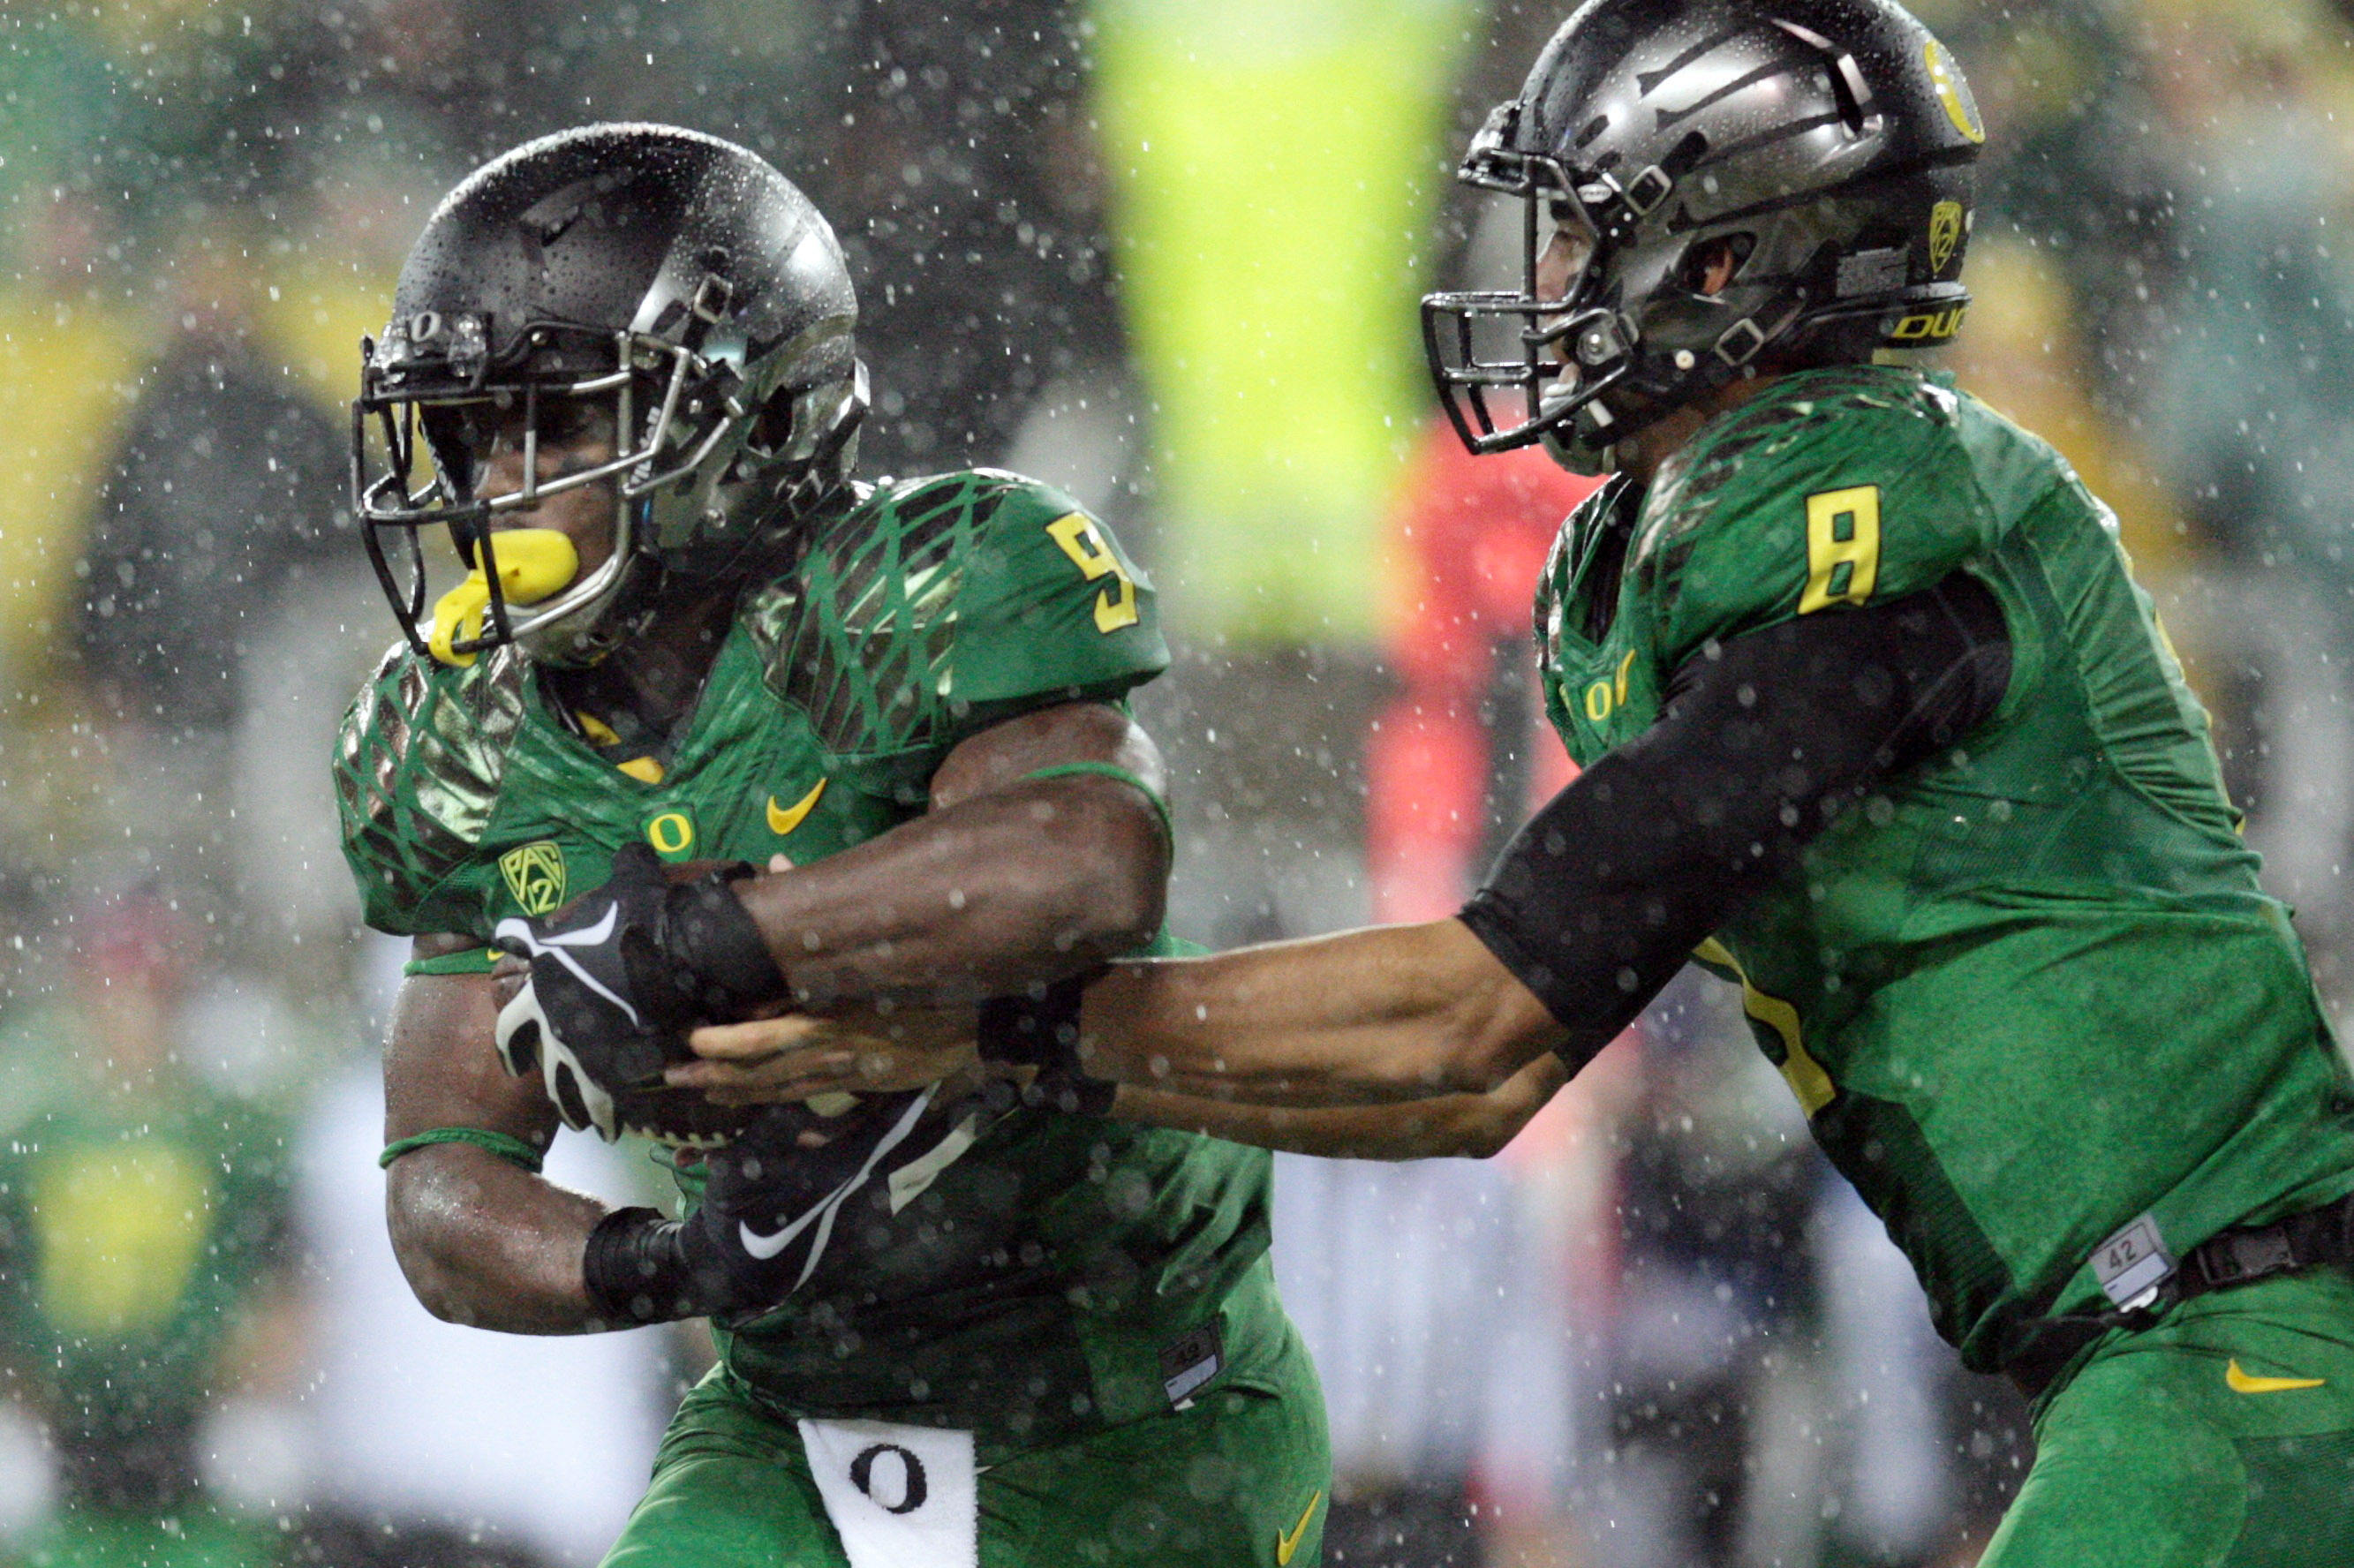 Oregon Ducks quarterback Marcus Mariota (8) hands the ball off to Oregon Ducks running back Byron Marshall (9) at Autzen Stadium. Mandatory Credit: Scott Olmos-USA TODAY Sports